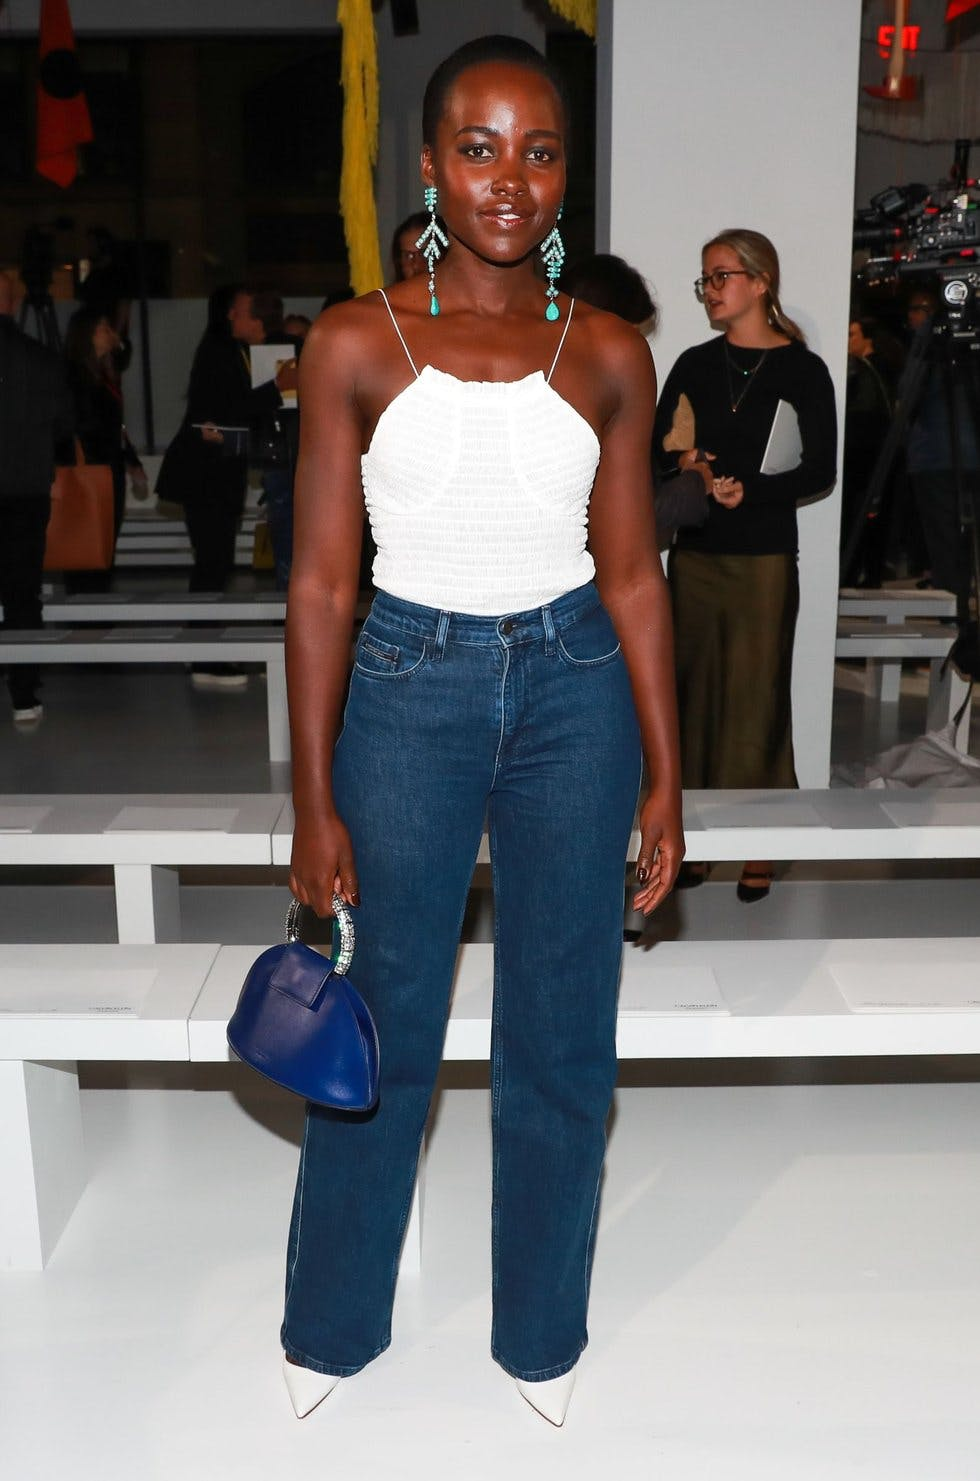 828f15cf9edb Update your denim for the new season with a pair of high-waisted, straight  leg jeans. A camisole top and statement earrings will take the look from  day to ...